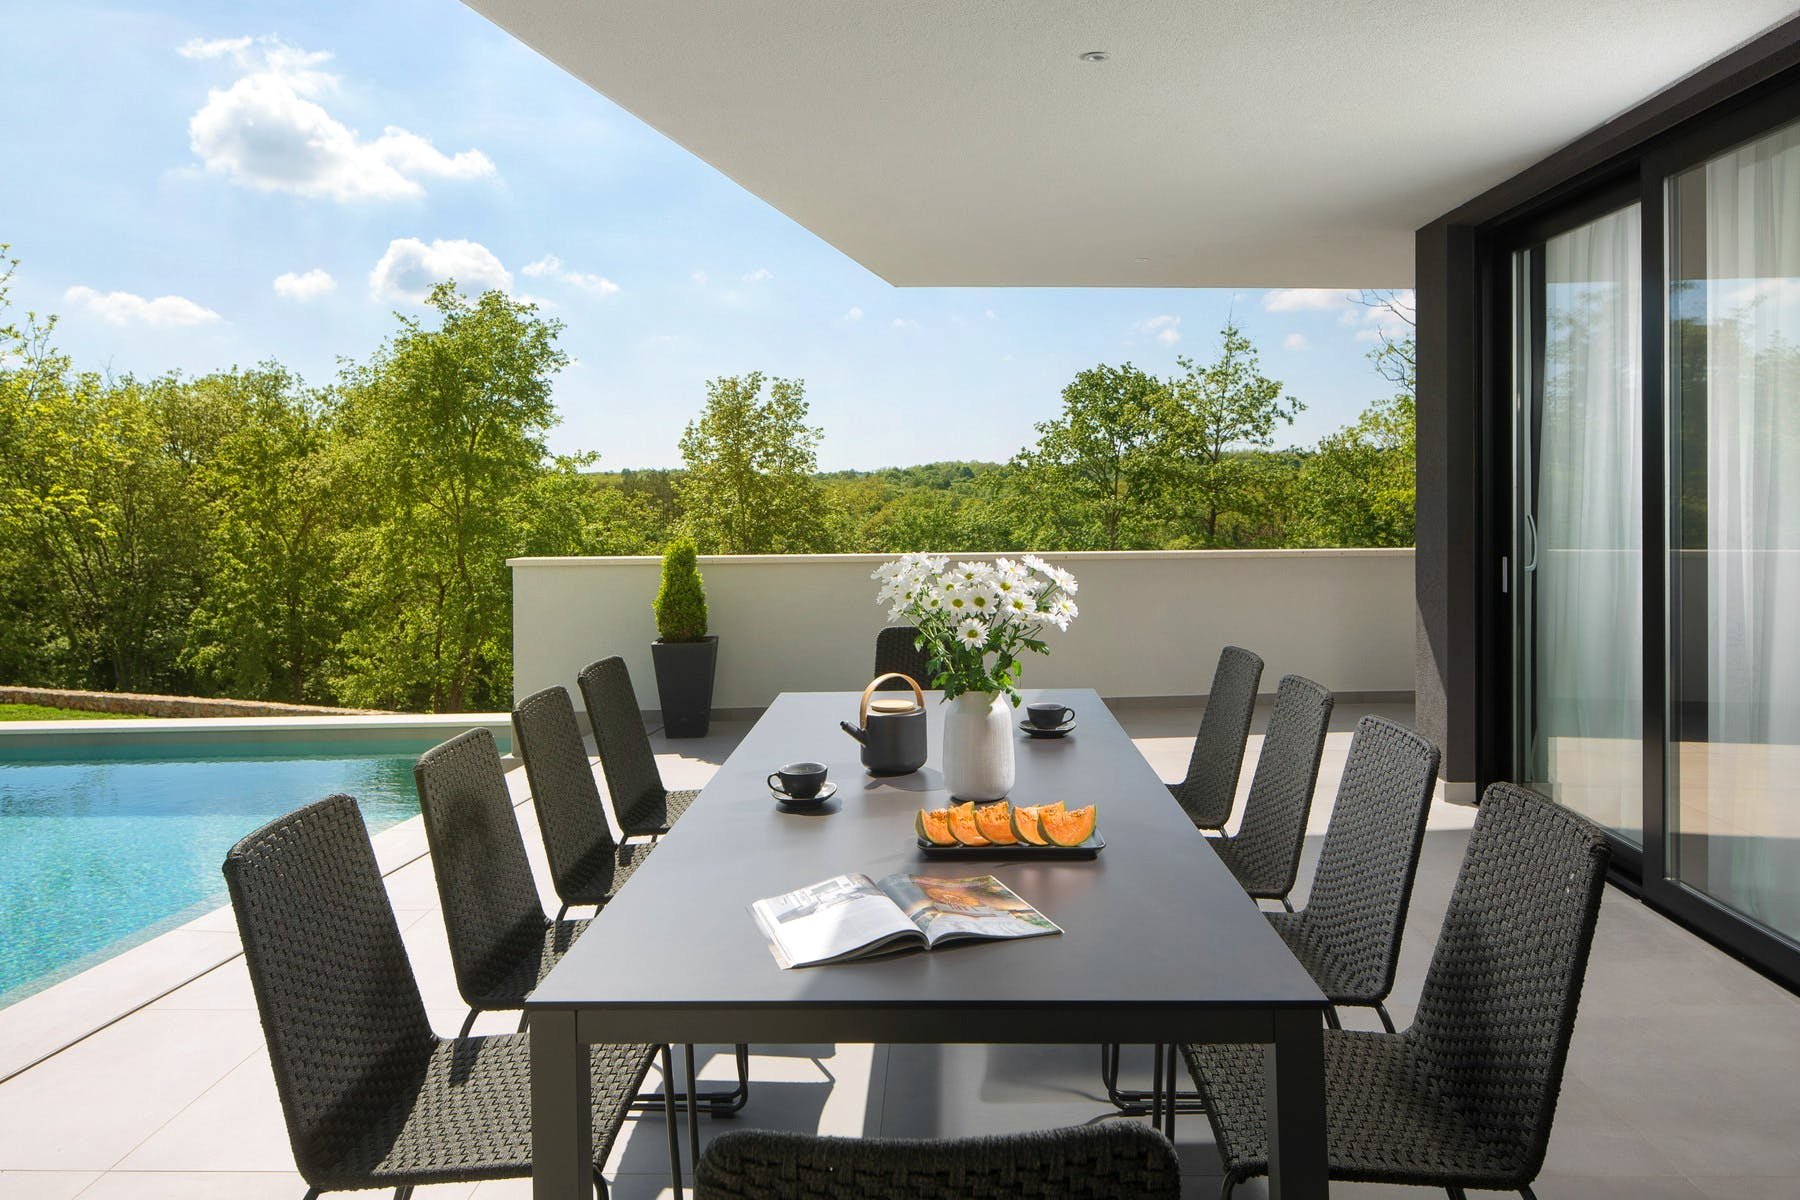 Spacious dining table in front of the villa